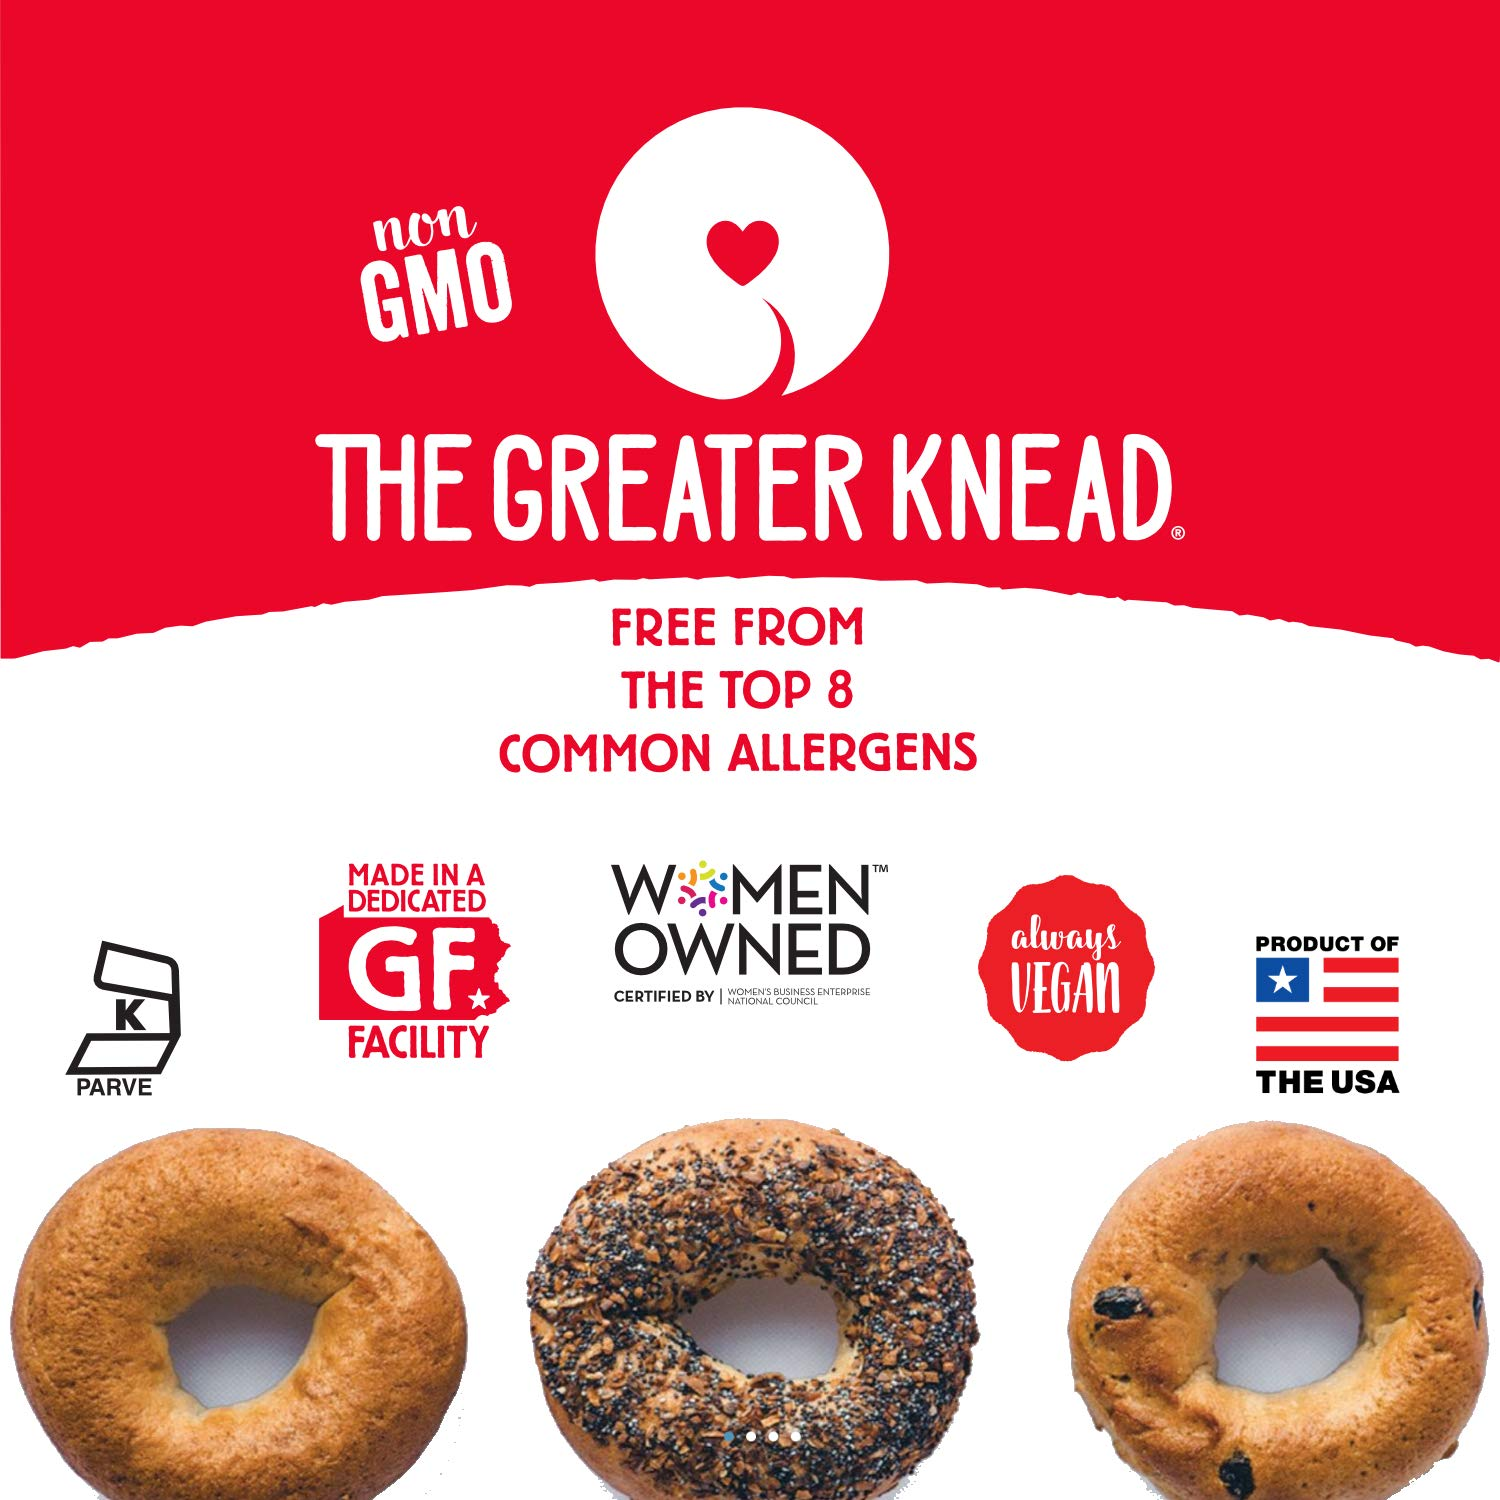 Greater Knead Gluten Free Bagel - Cinnamon Raisin - Vegan, non-GMO, Free of Wheat, Nuts, Soy, Peanuts, Tree Nuts (12 bagels) by The Greater Knead (Image #6)